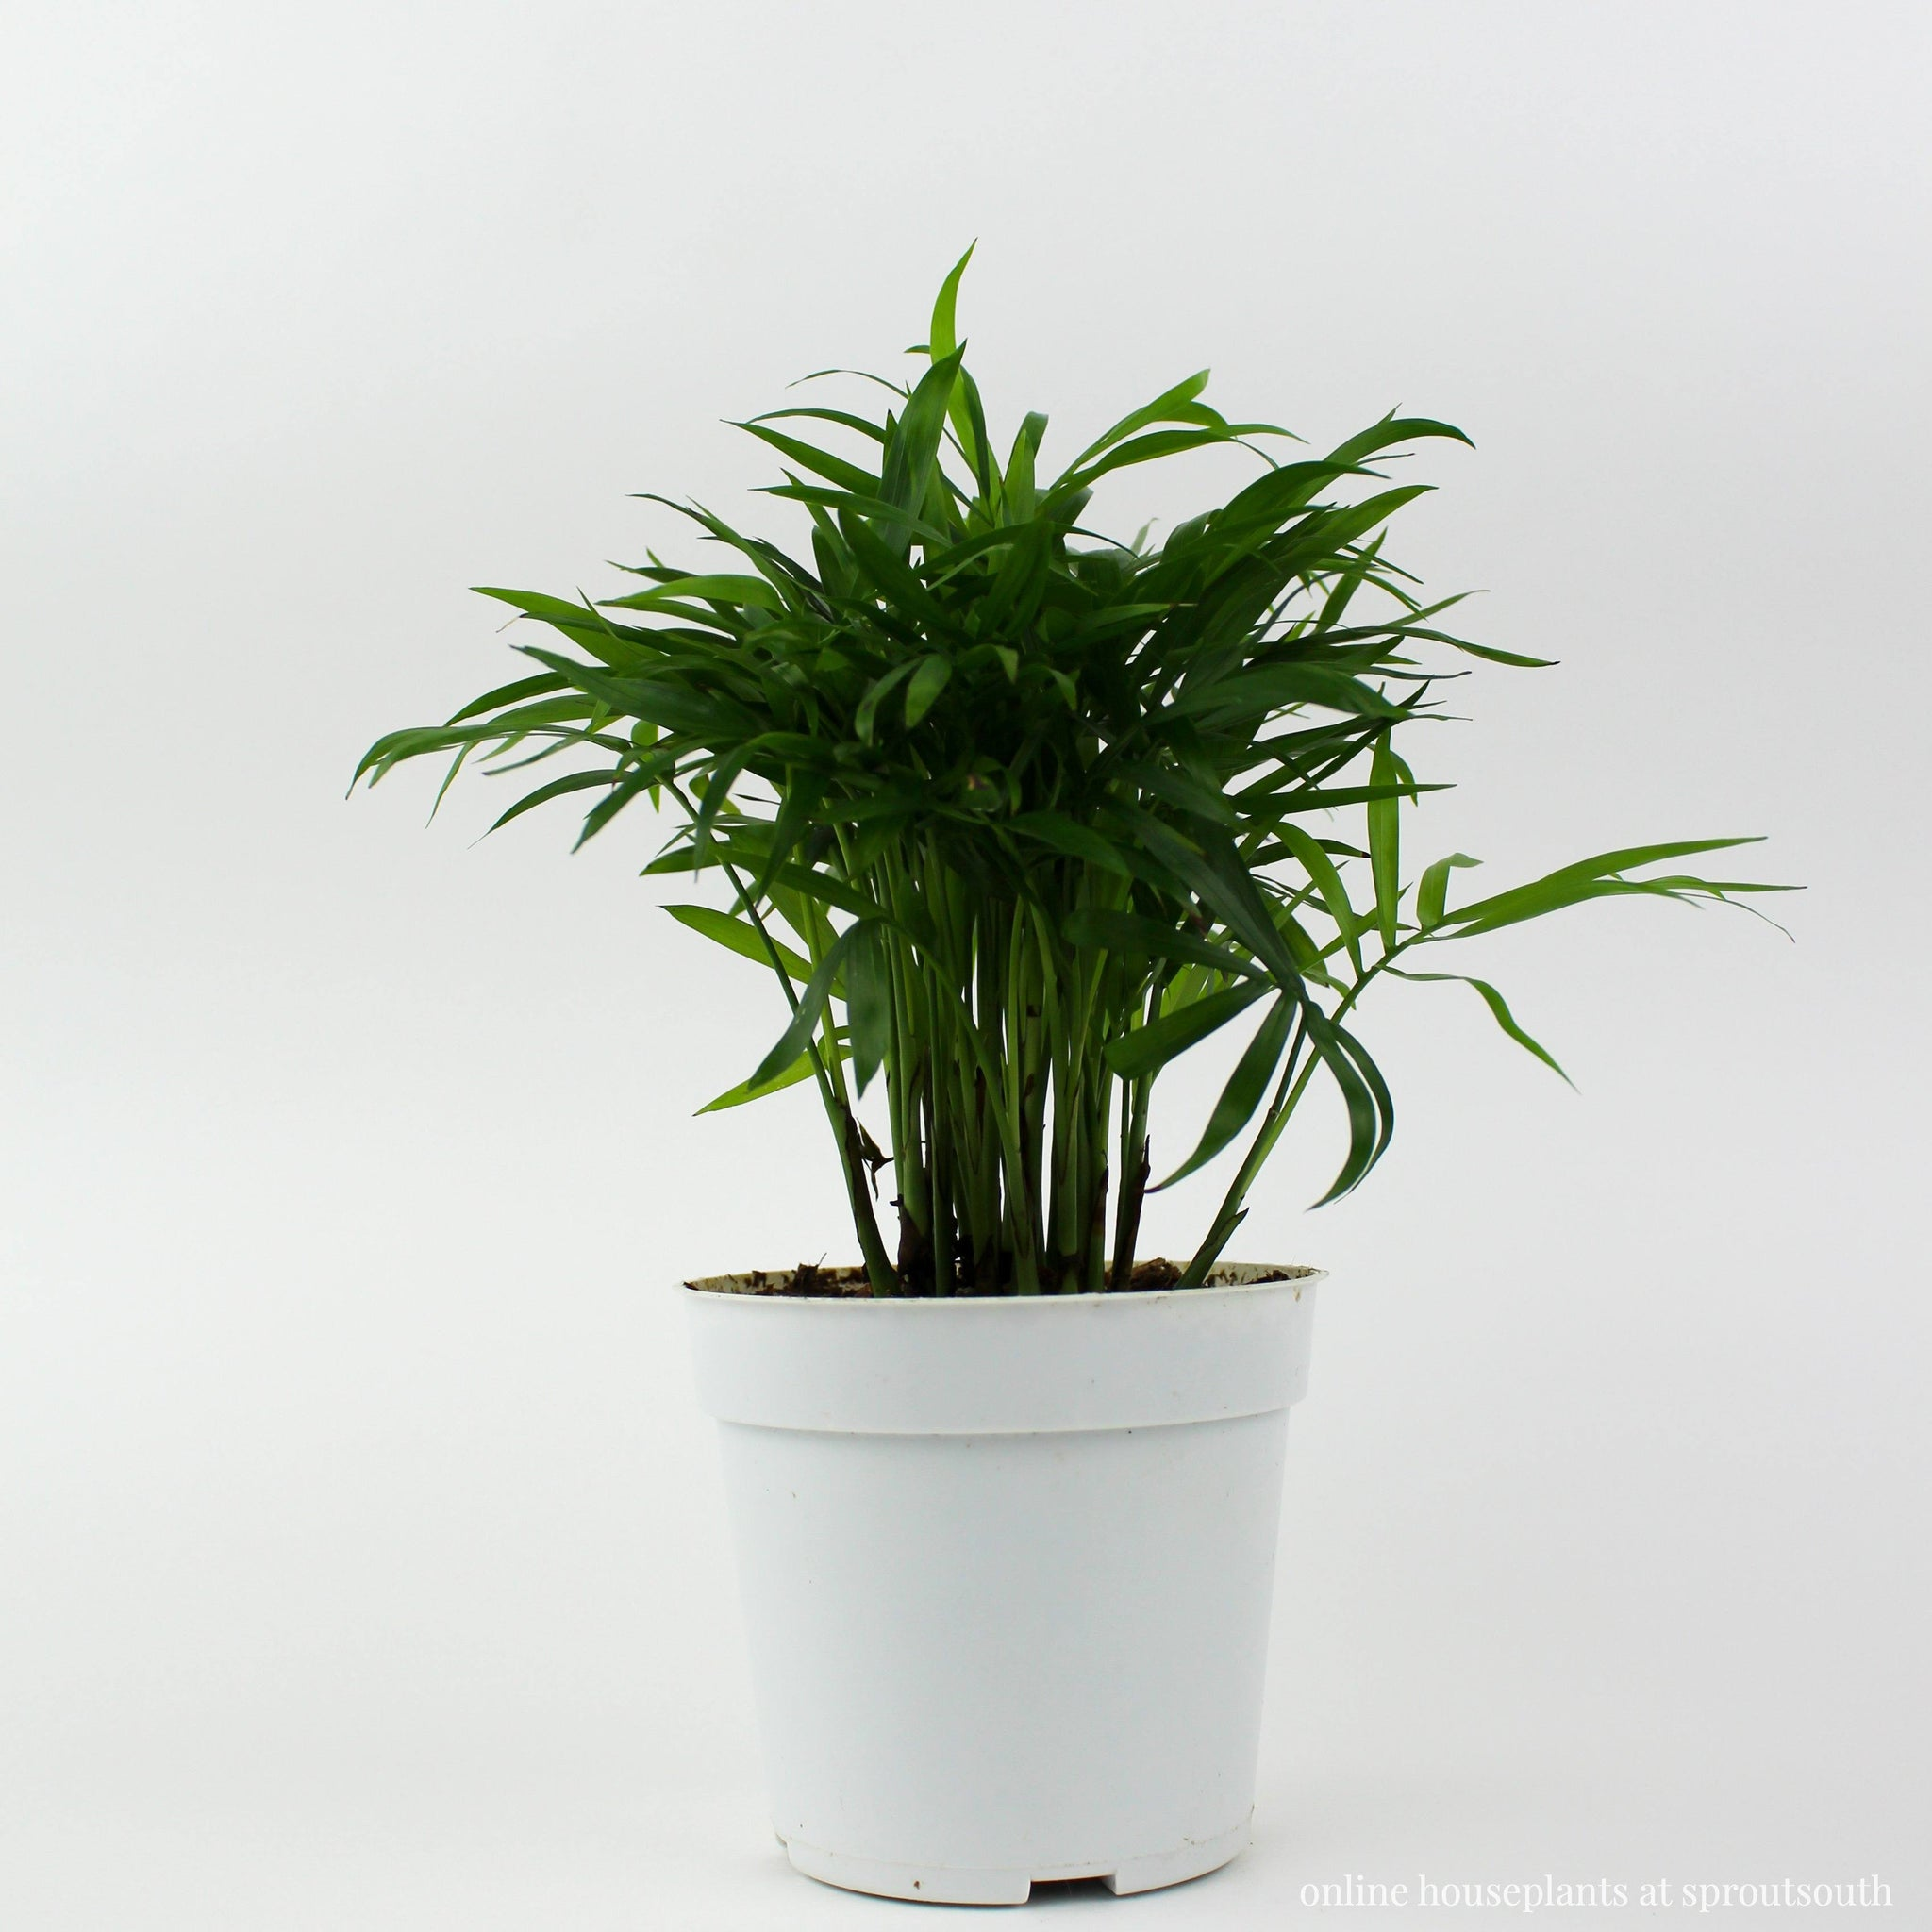 Parlor Palm Houseplant Indoor Plants House Plant Shop